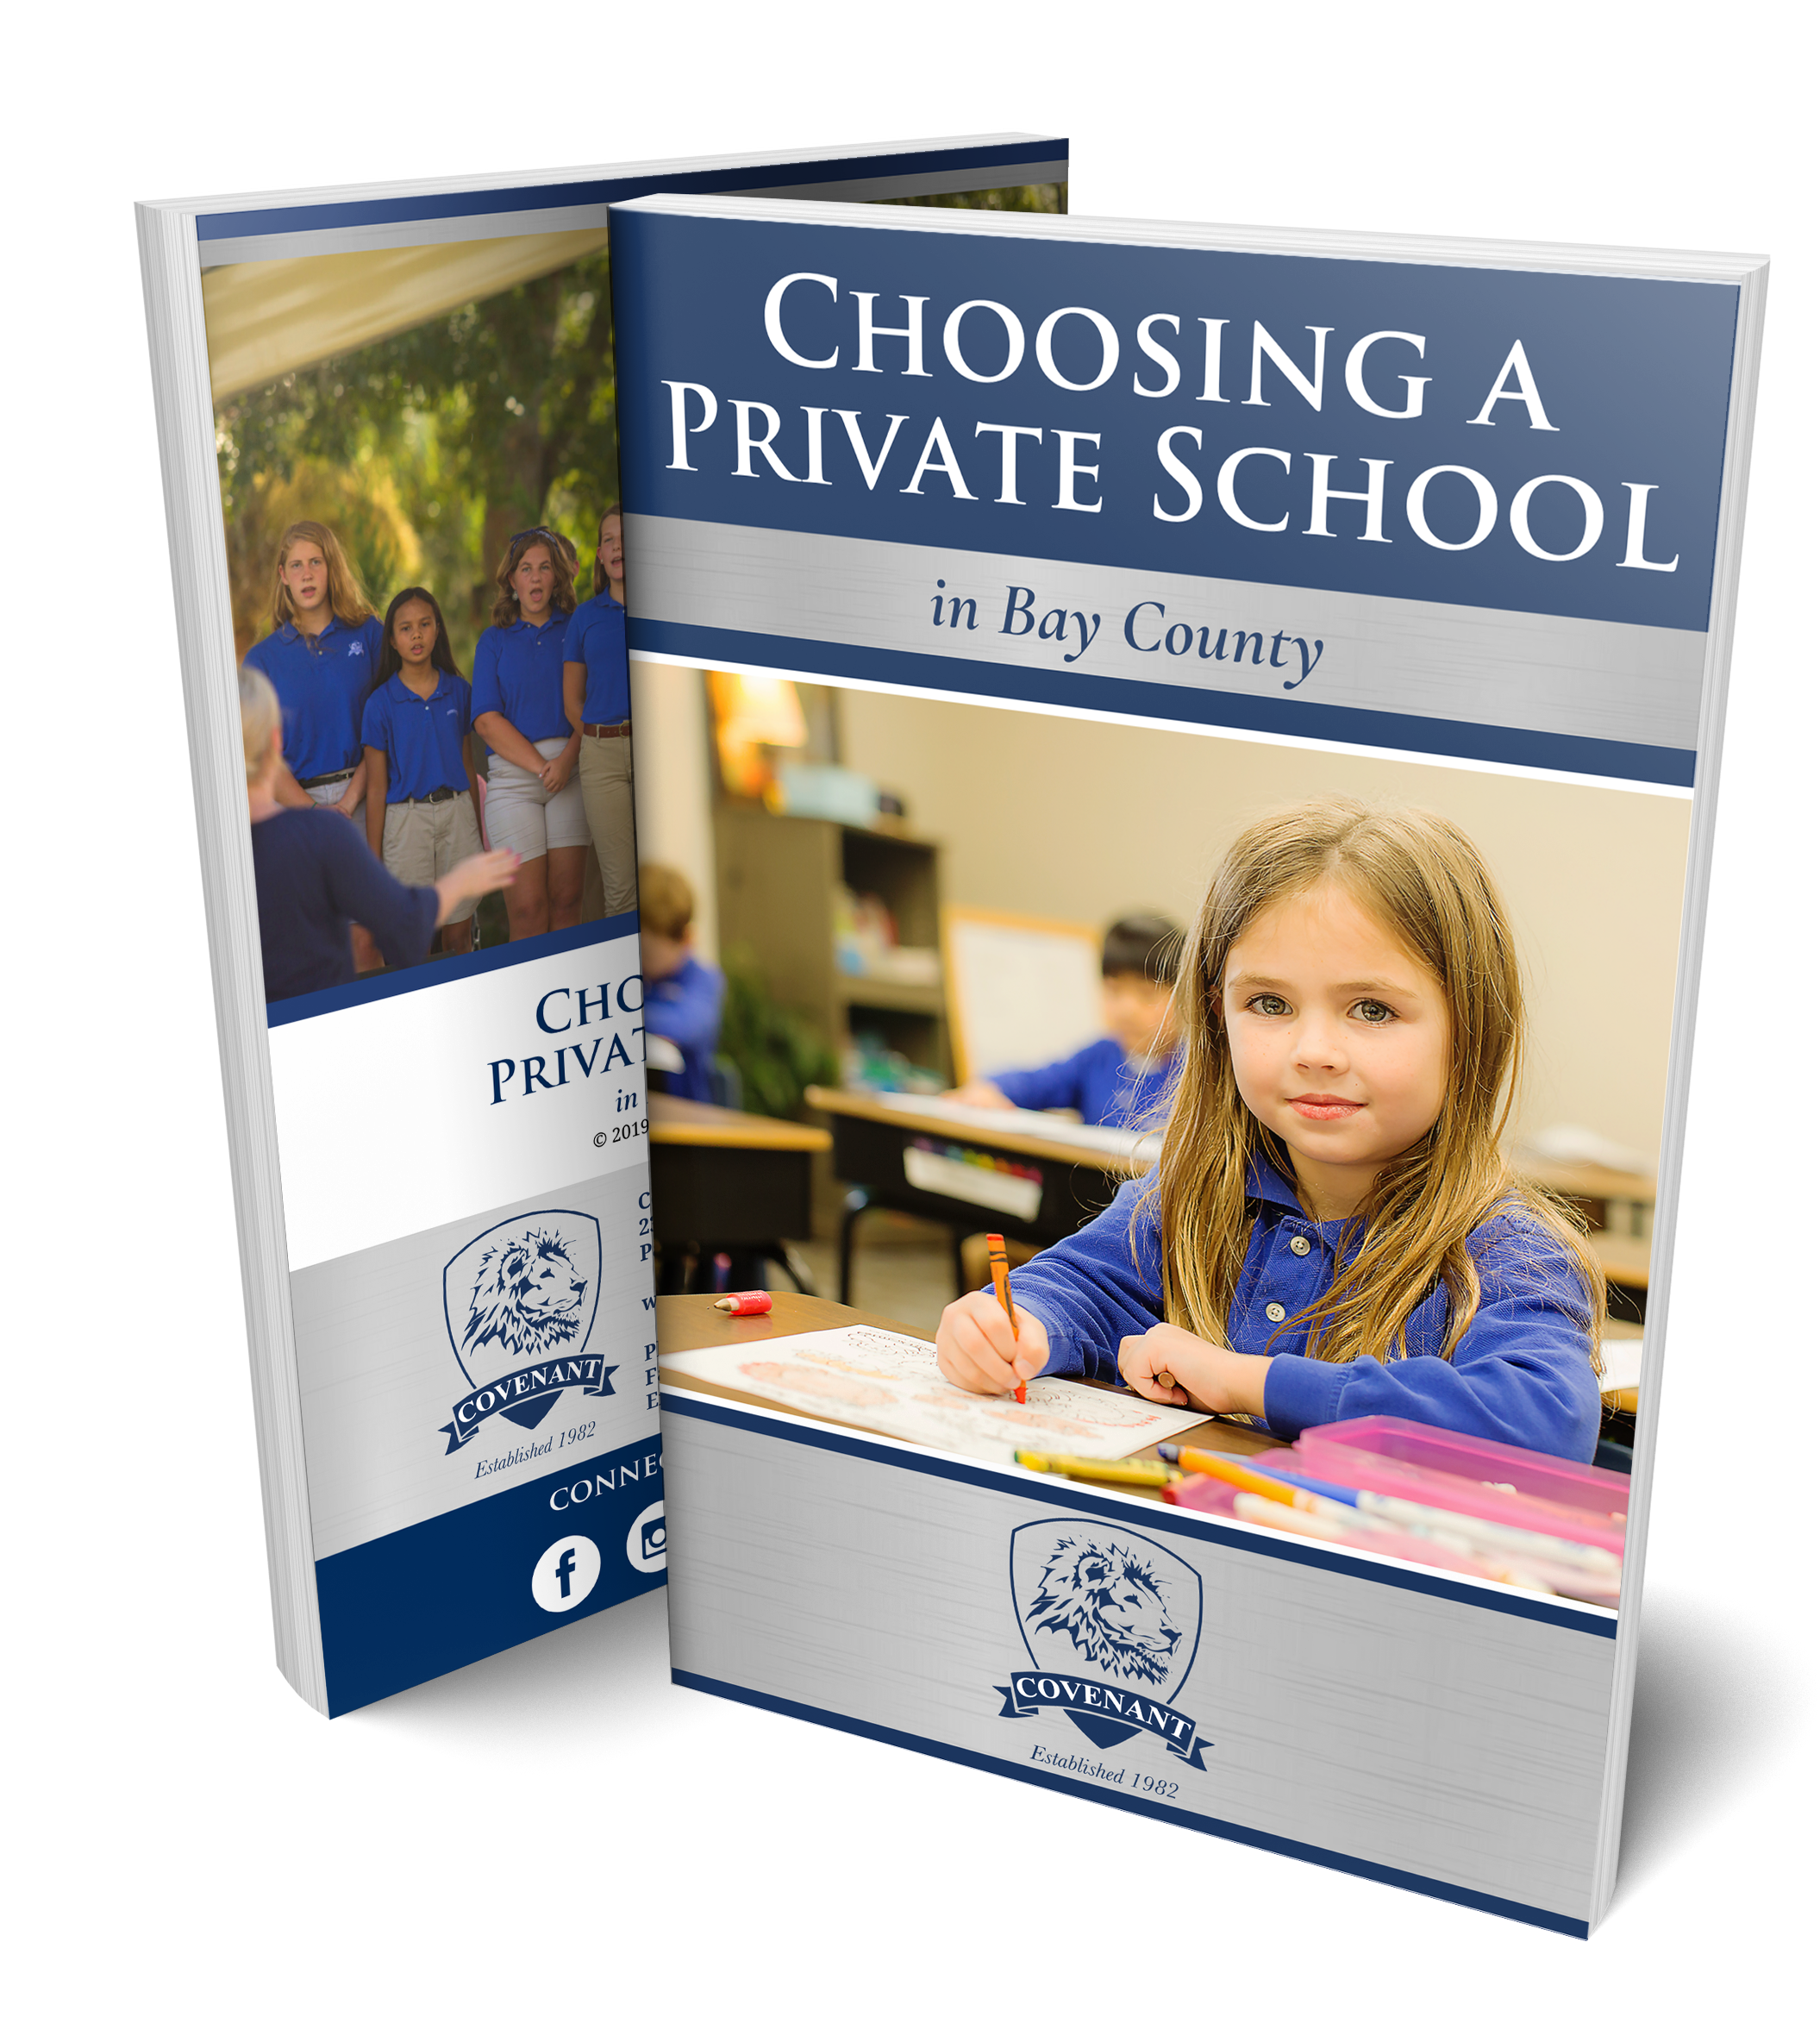 Choosing a private school in Bay County